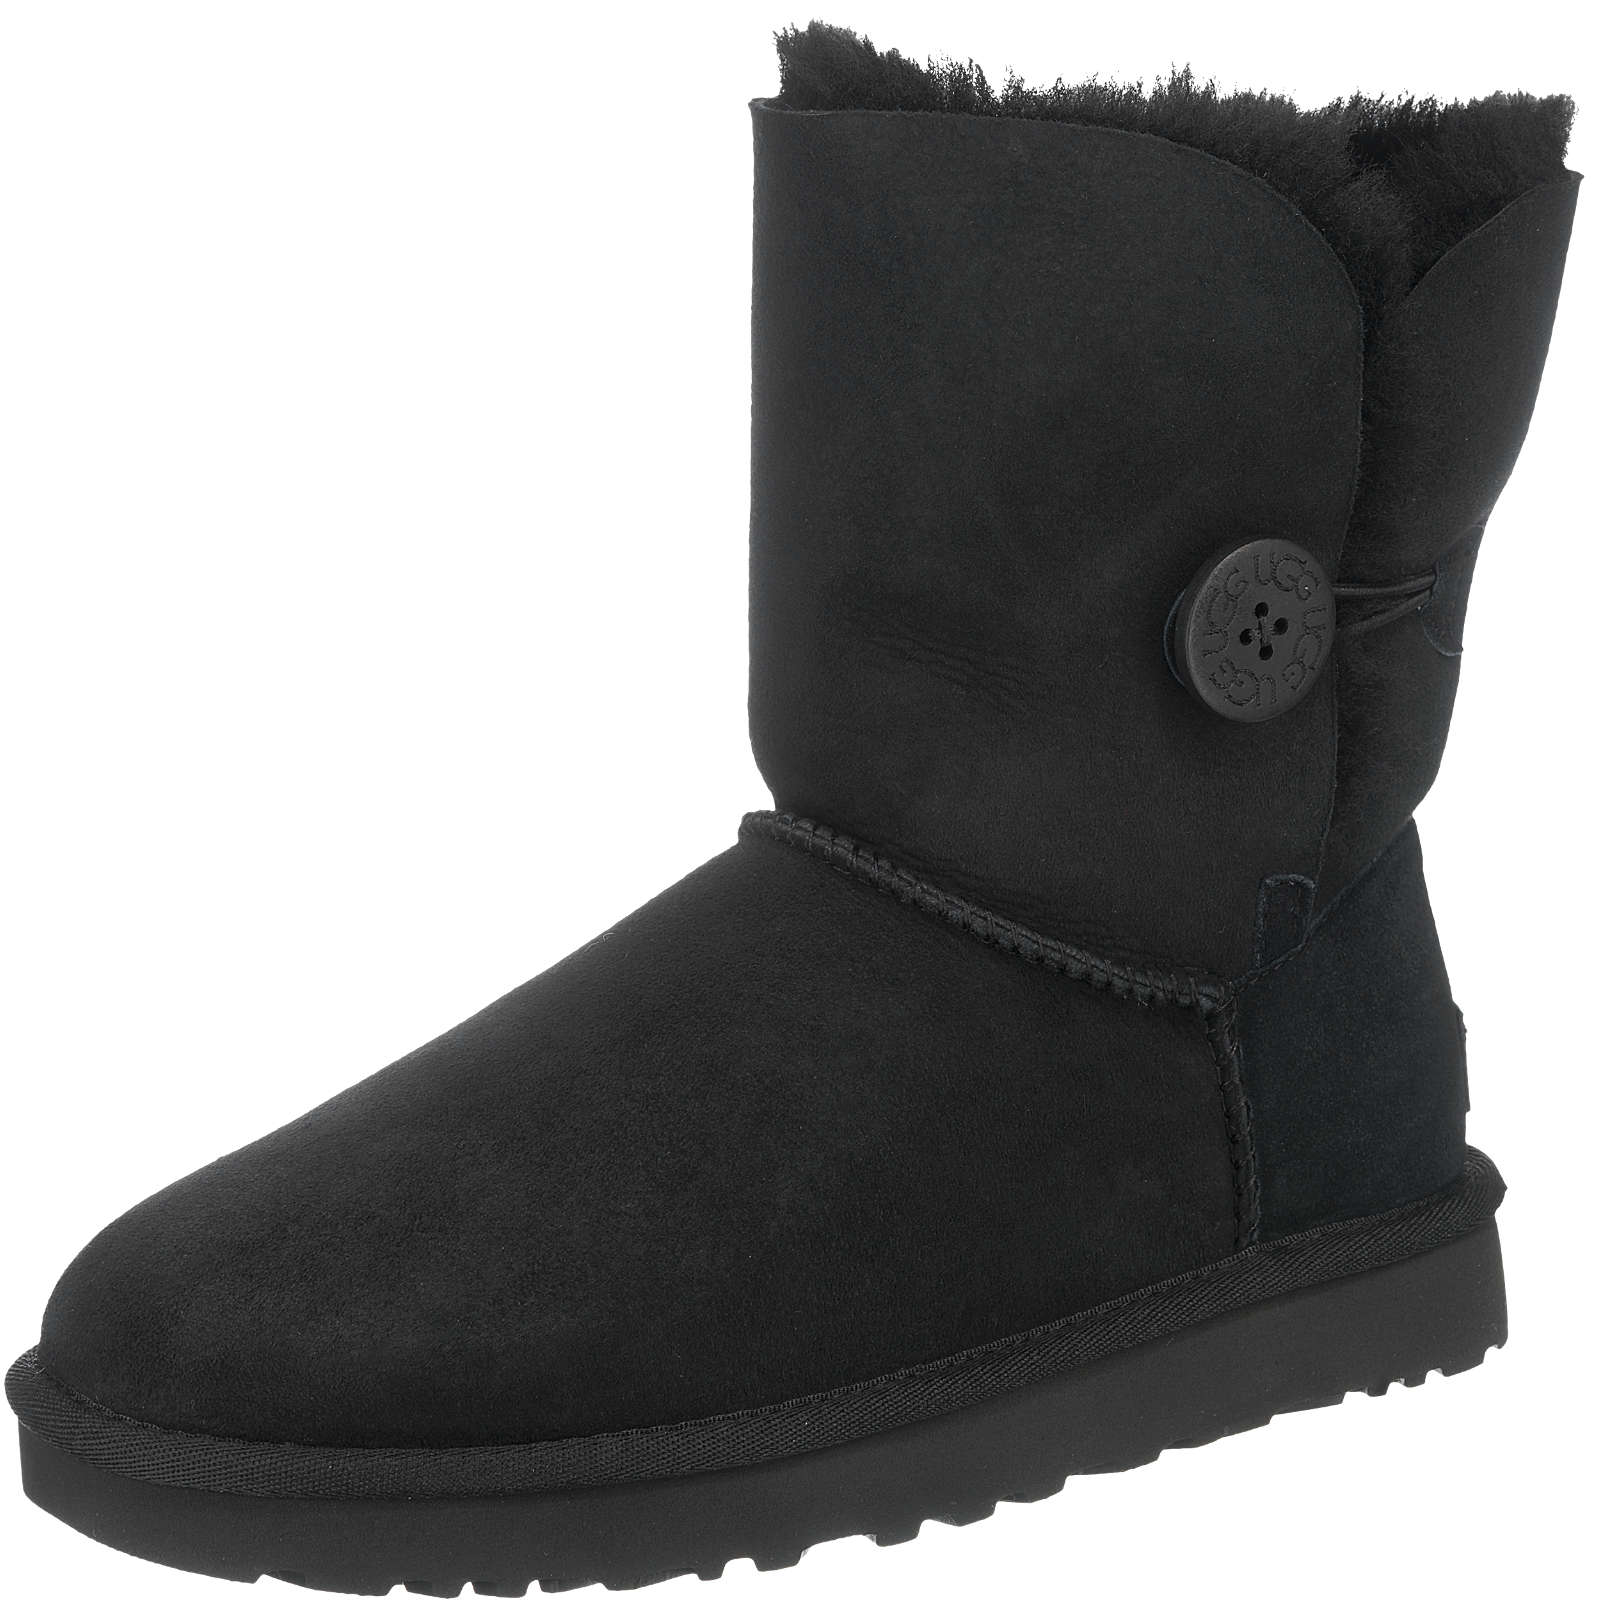 UGG Bailey Button II Stiefel schwarz Damen Gr. 41